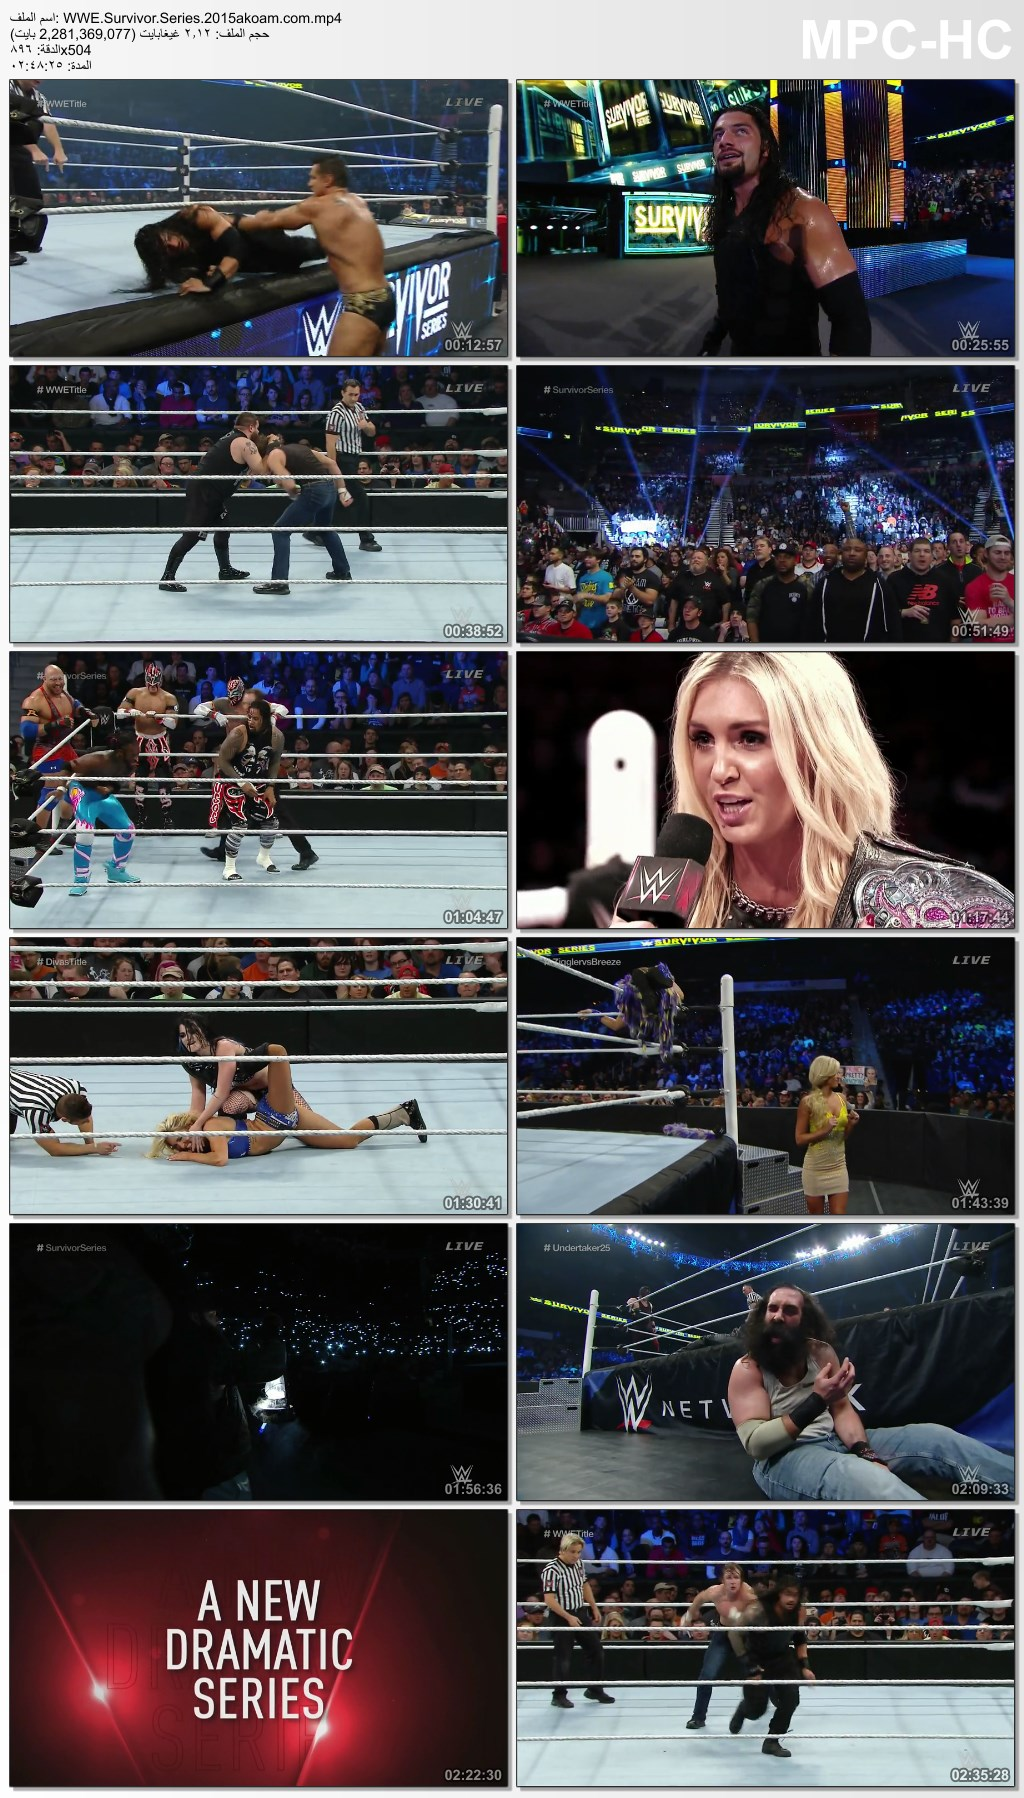 WWE Survivor Series 2015,Survivor,Series,WWE,Survivor Series 2015,Survivor Series,سرفايفر سيريس,سرفايفر سيريس 2015